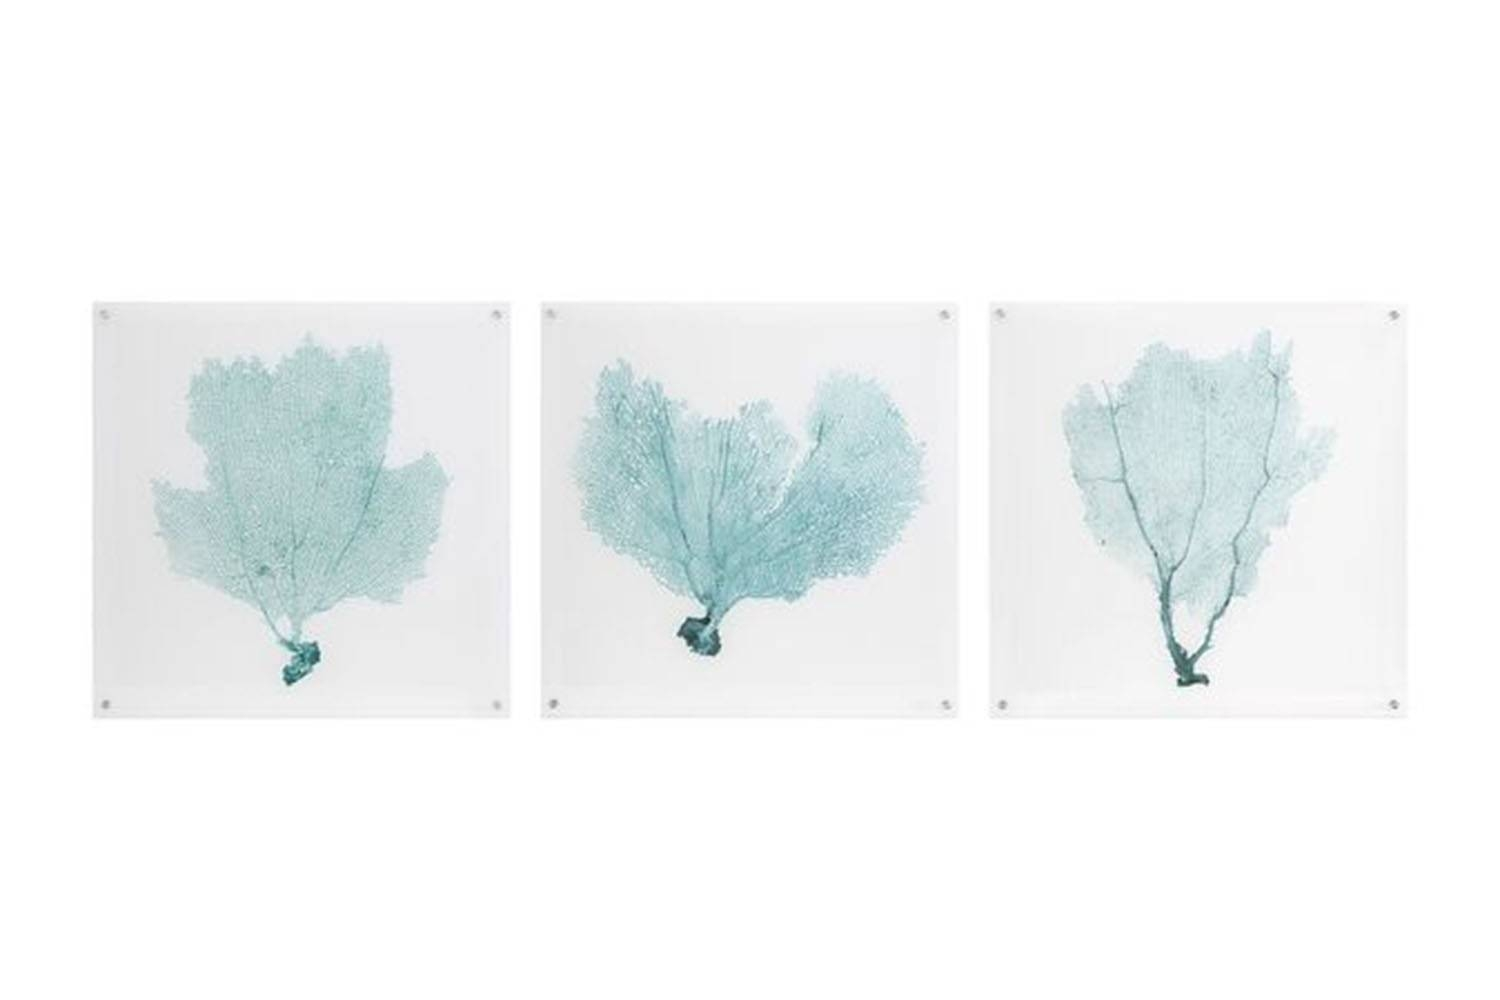 Sea Fan Acrylic Floating Wall Art | Mor Furniture For Less Within Most Up To Date Sea Fan Wall Art (View 11 of 25)